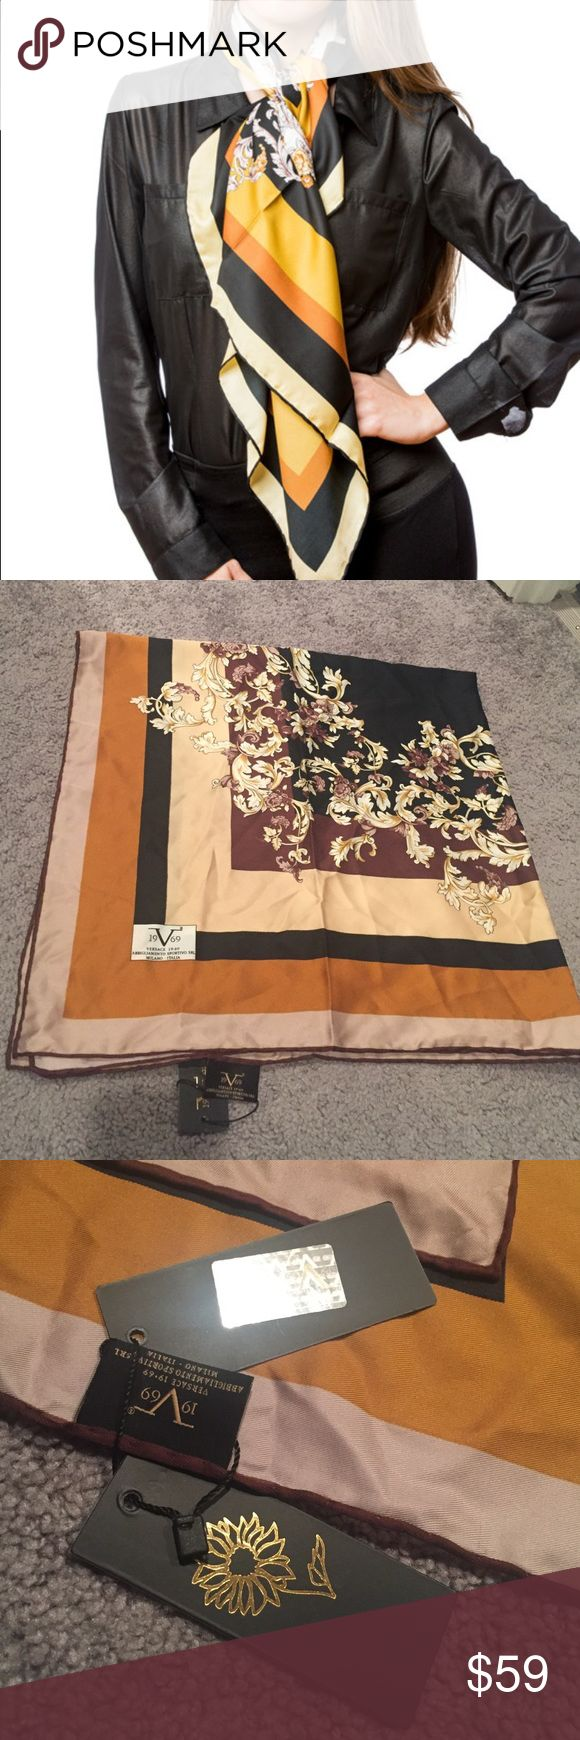 """Versace 1969 Abbigliamento Sportivo scarf Brand new with tags. Black and Yellow vine scarf by Versace. 100% polyester. 35.4"""" x 35.4"""" square scarf. Versace Accessories Scarves & Wraps"""